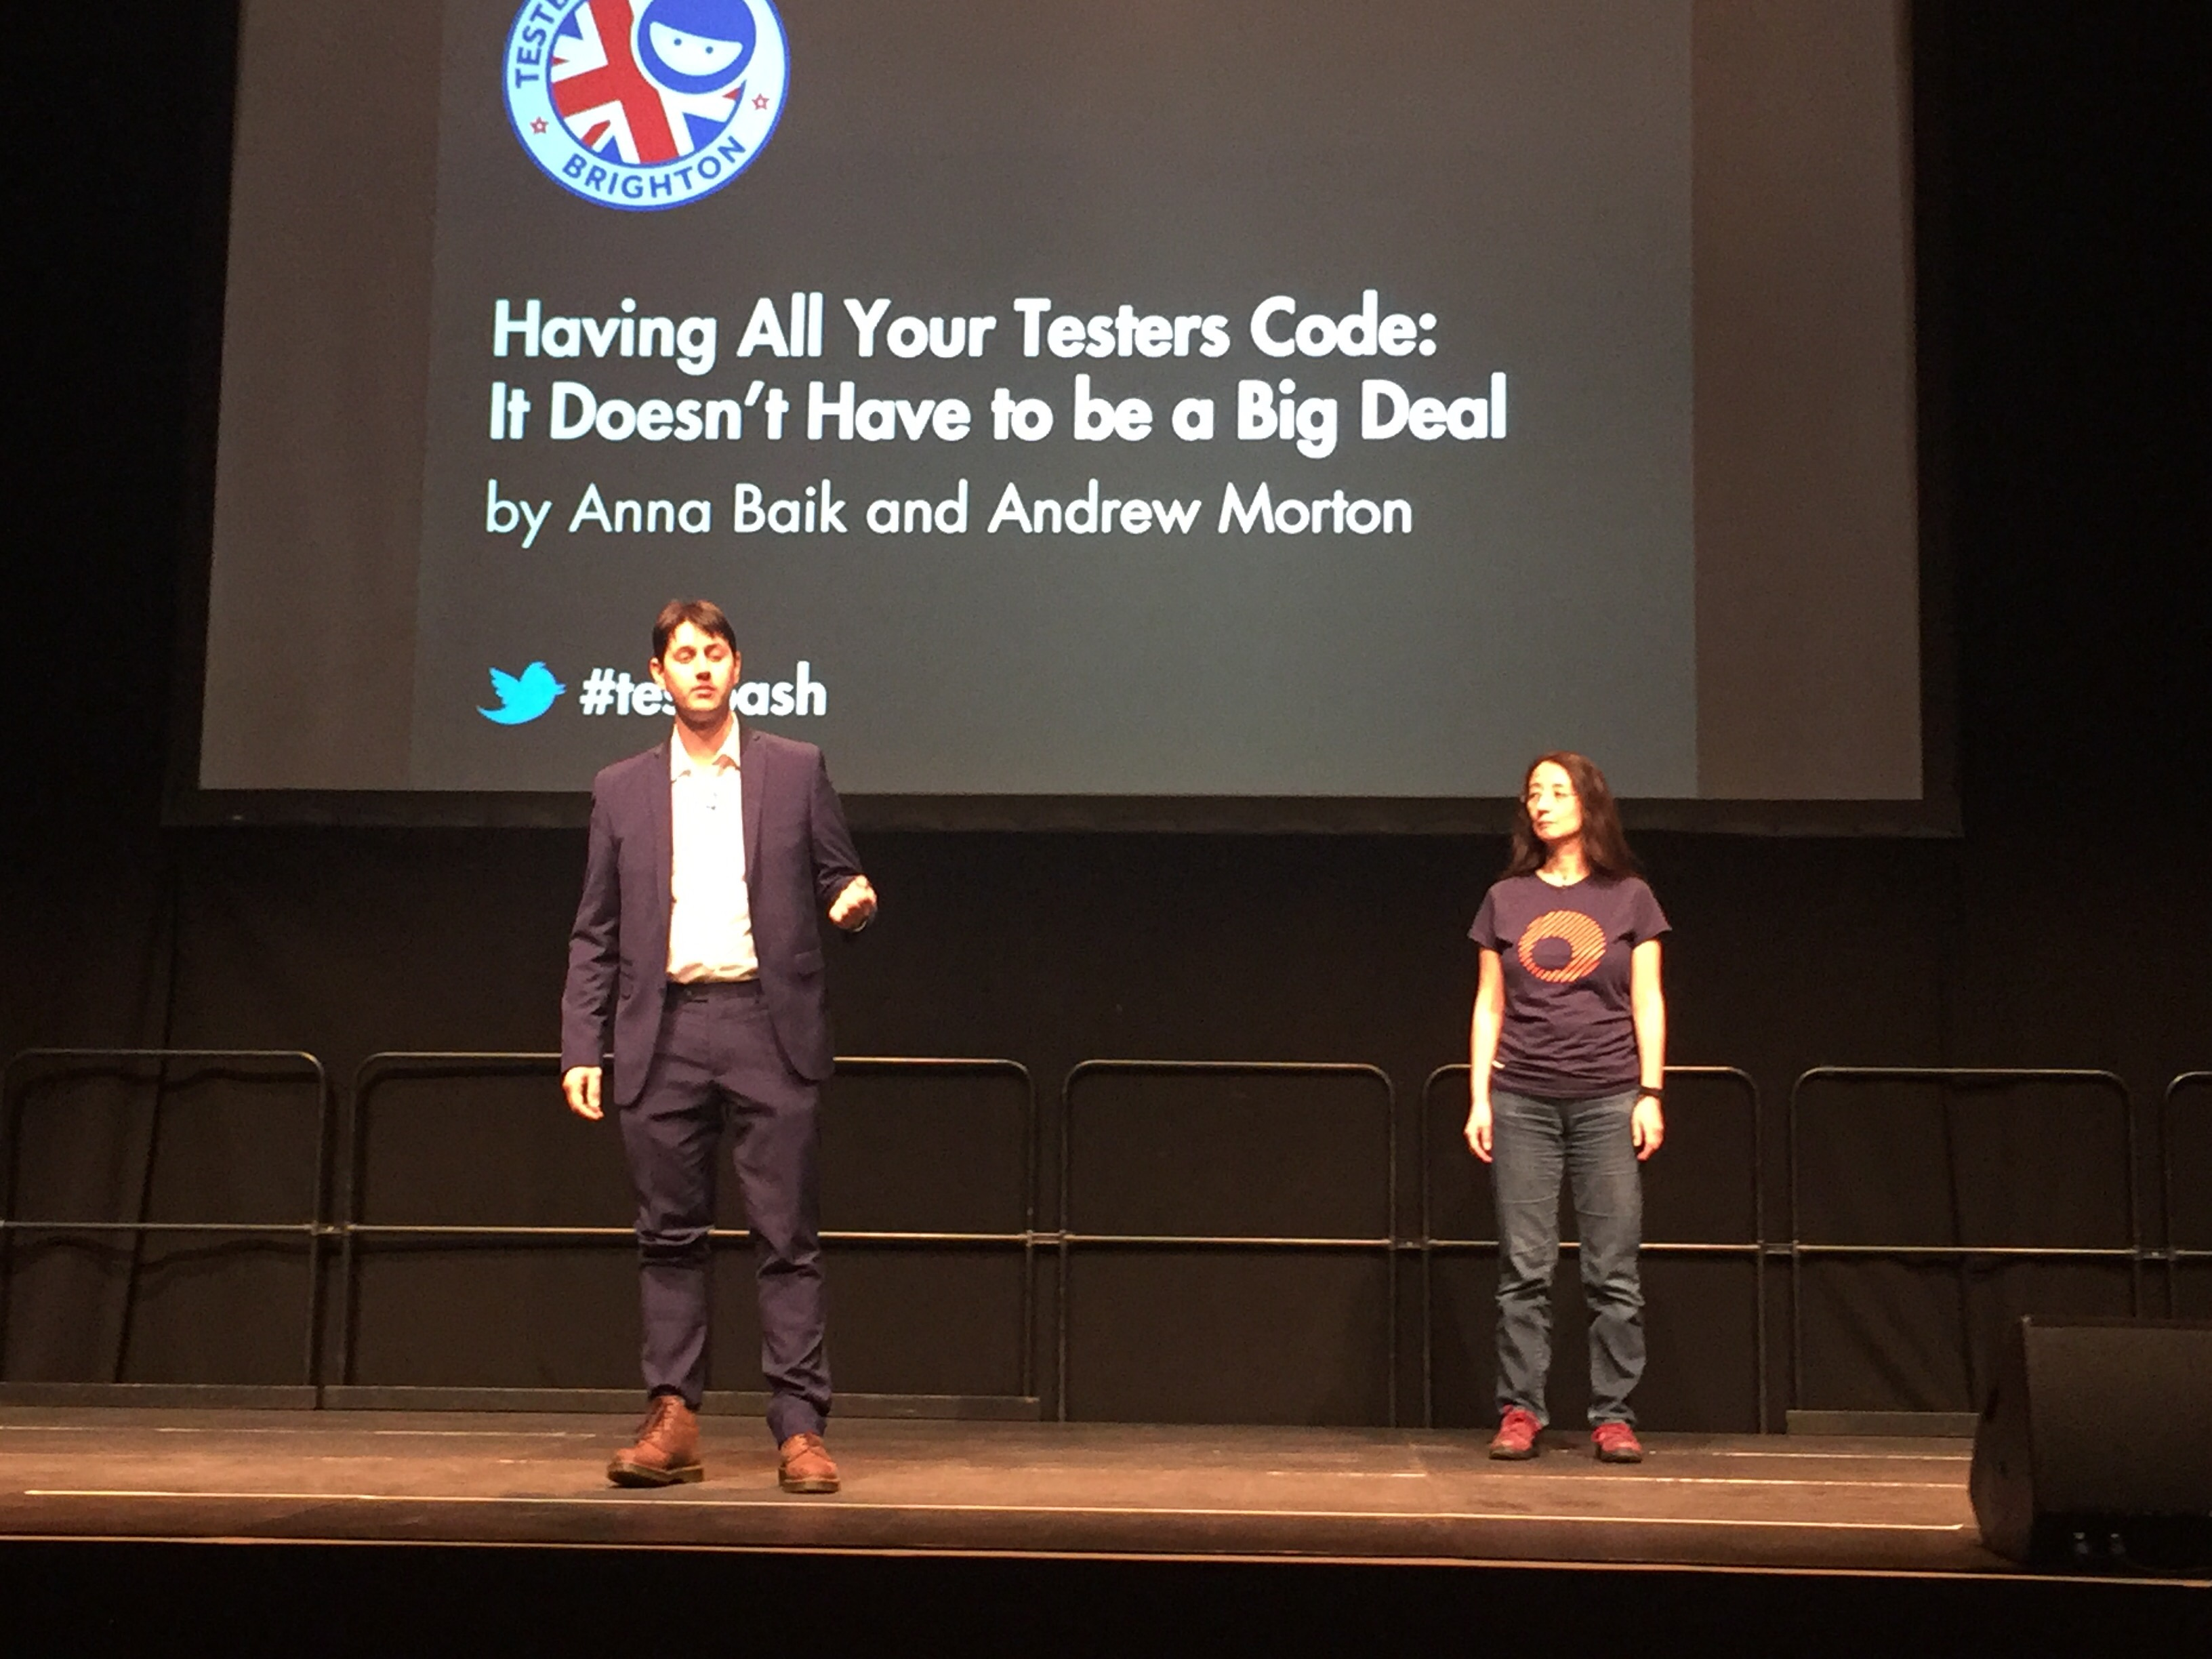 Anna Baik and Andrew Morton